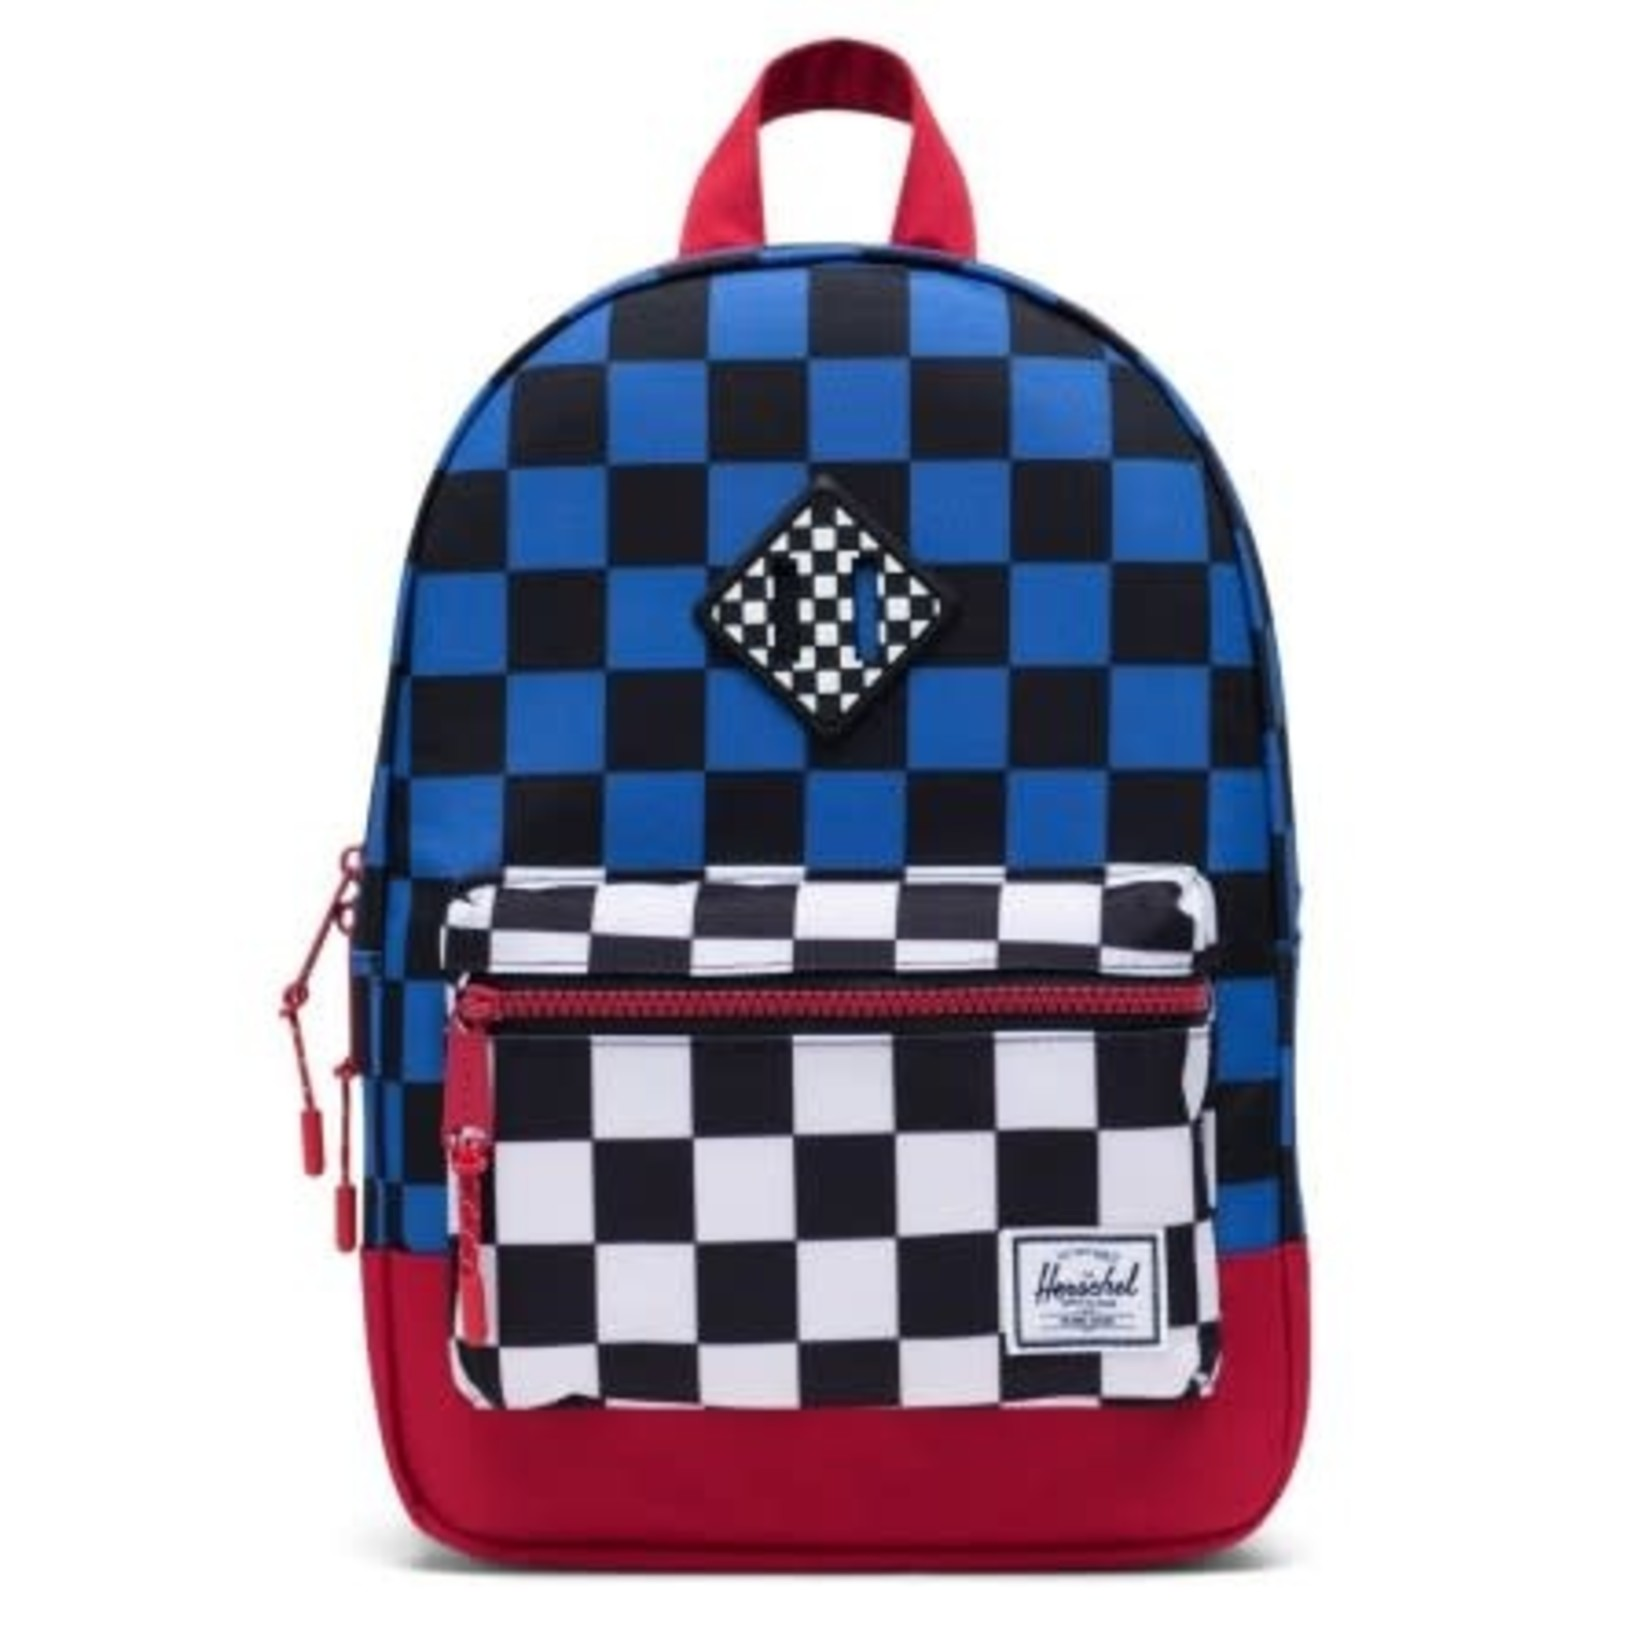 HERSCHEL HERSCHEL RED/BLUE/check M